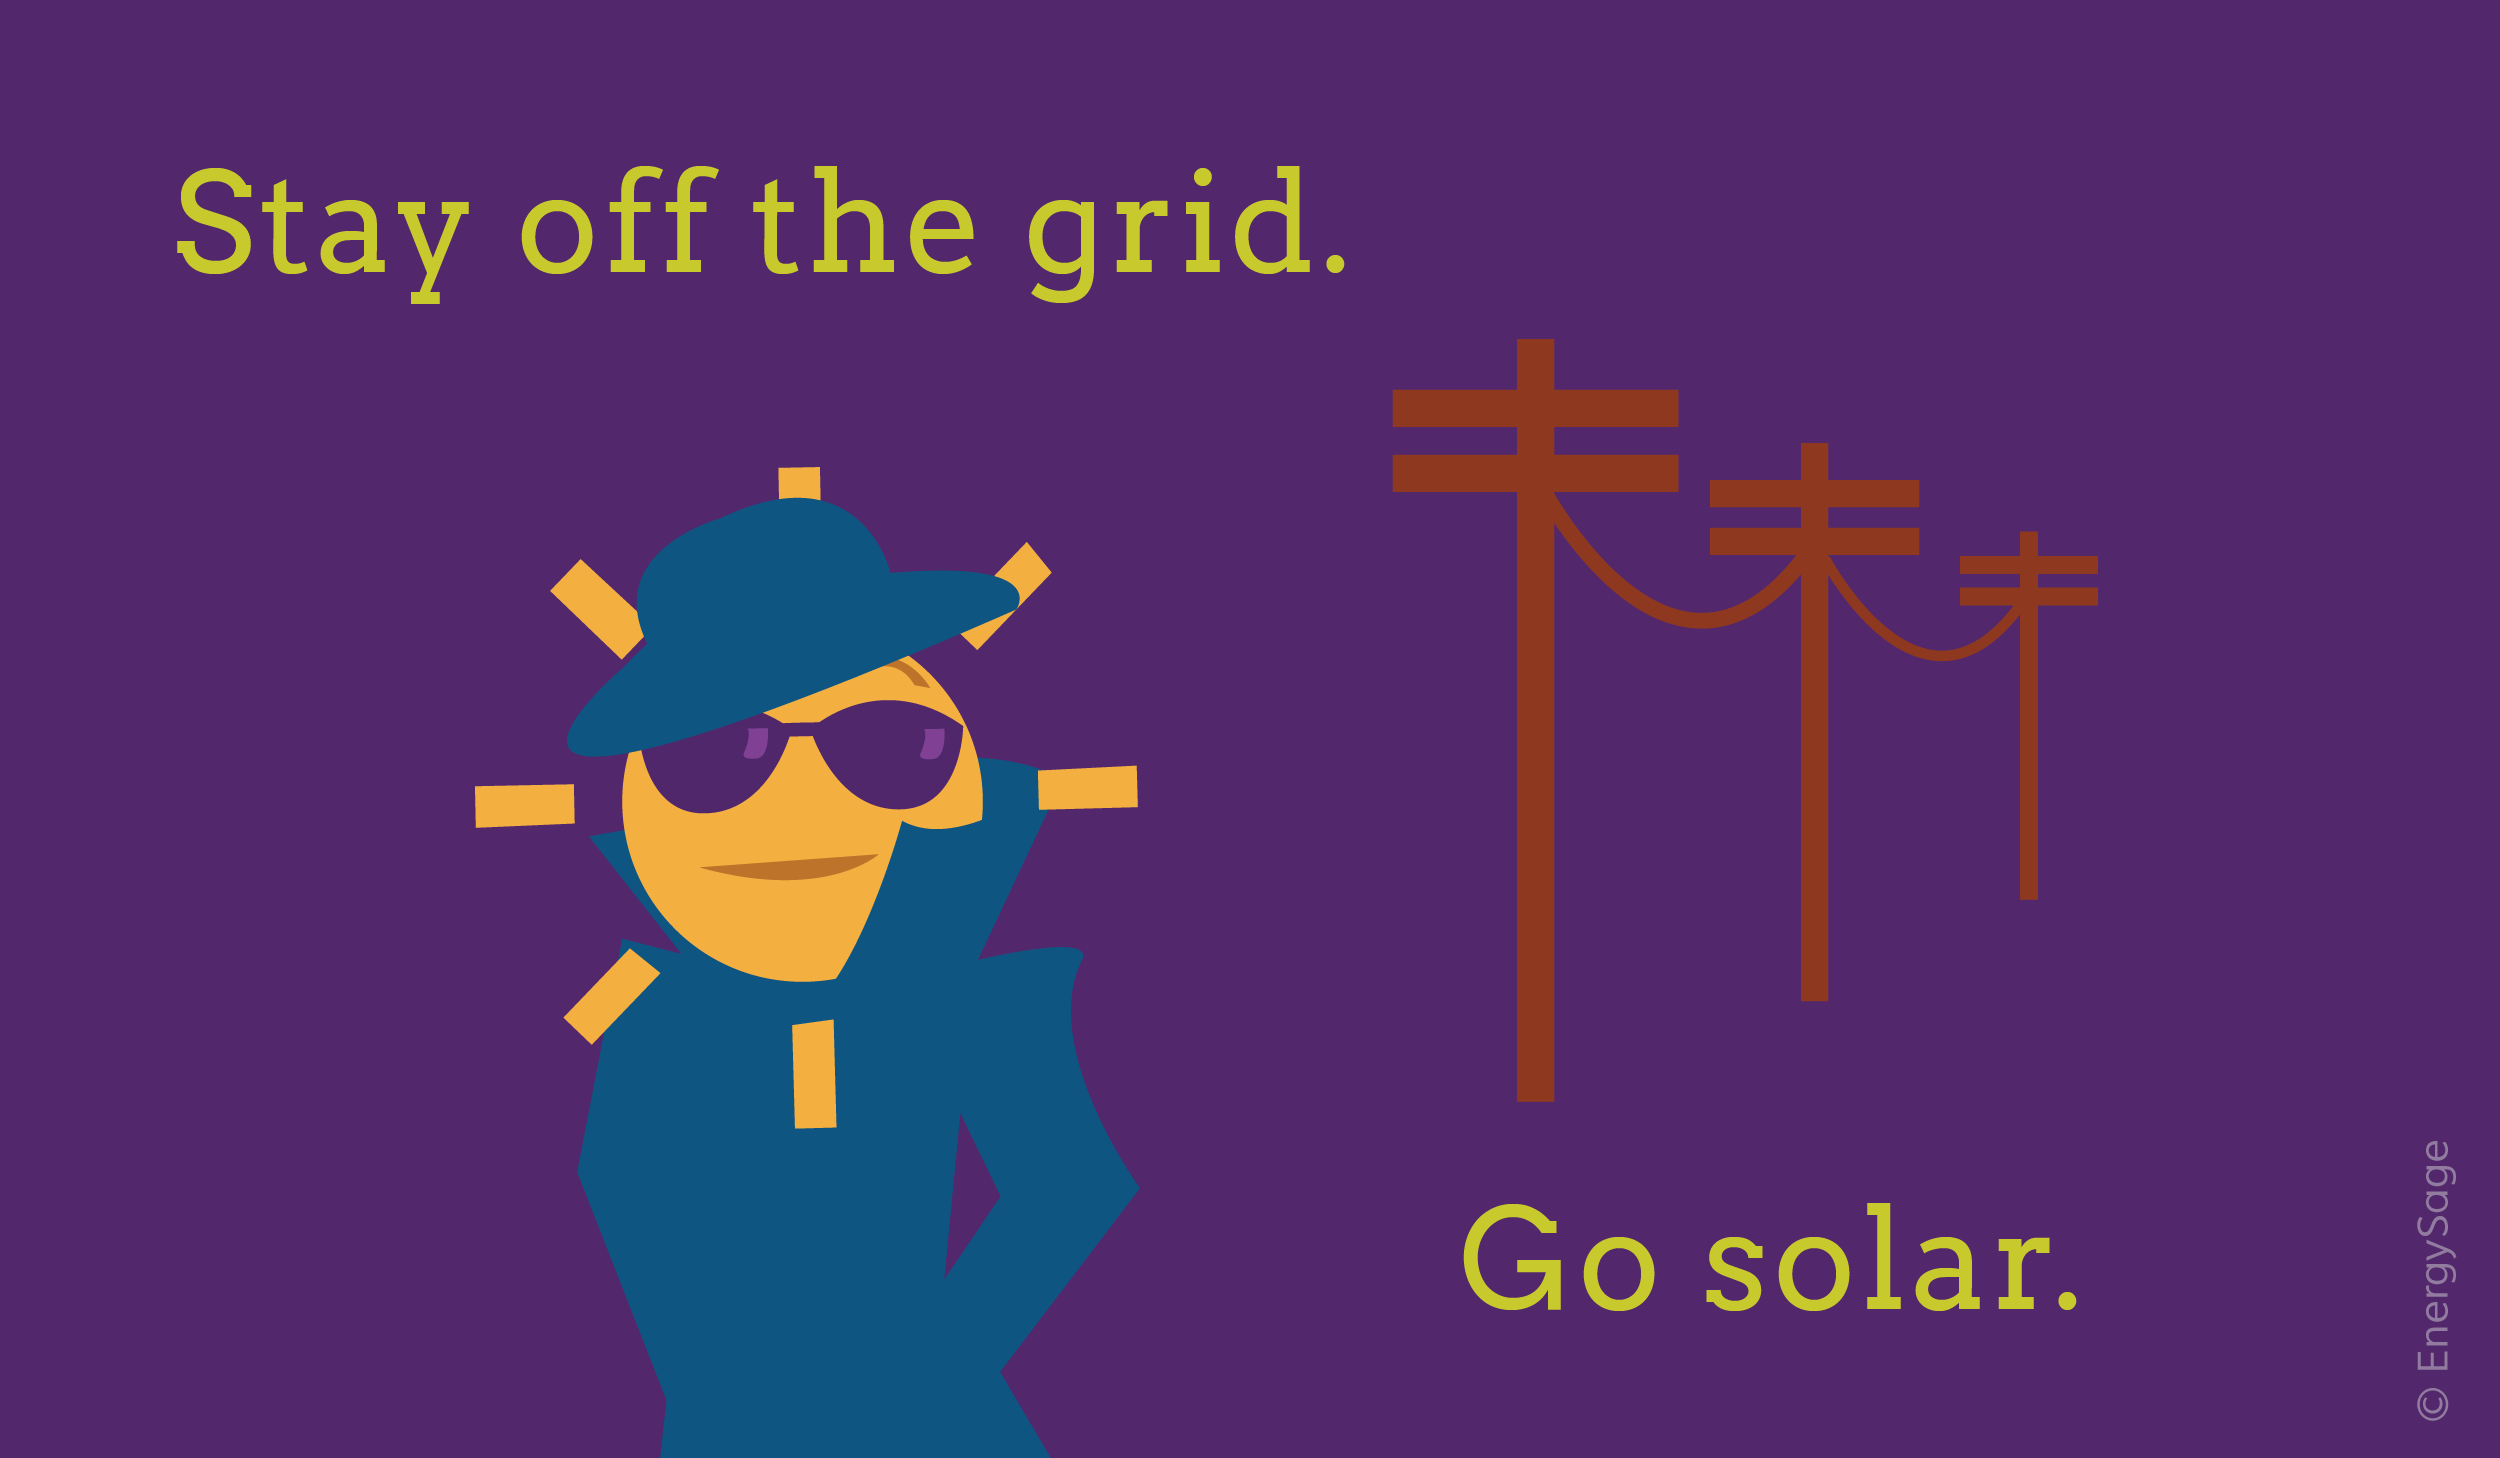 off grid solar energy graphic energysage